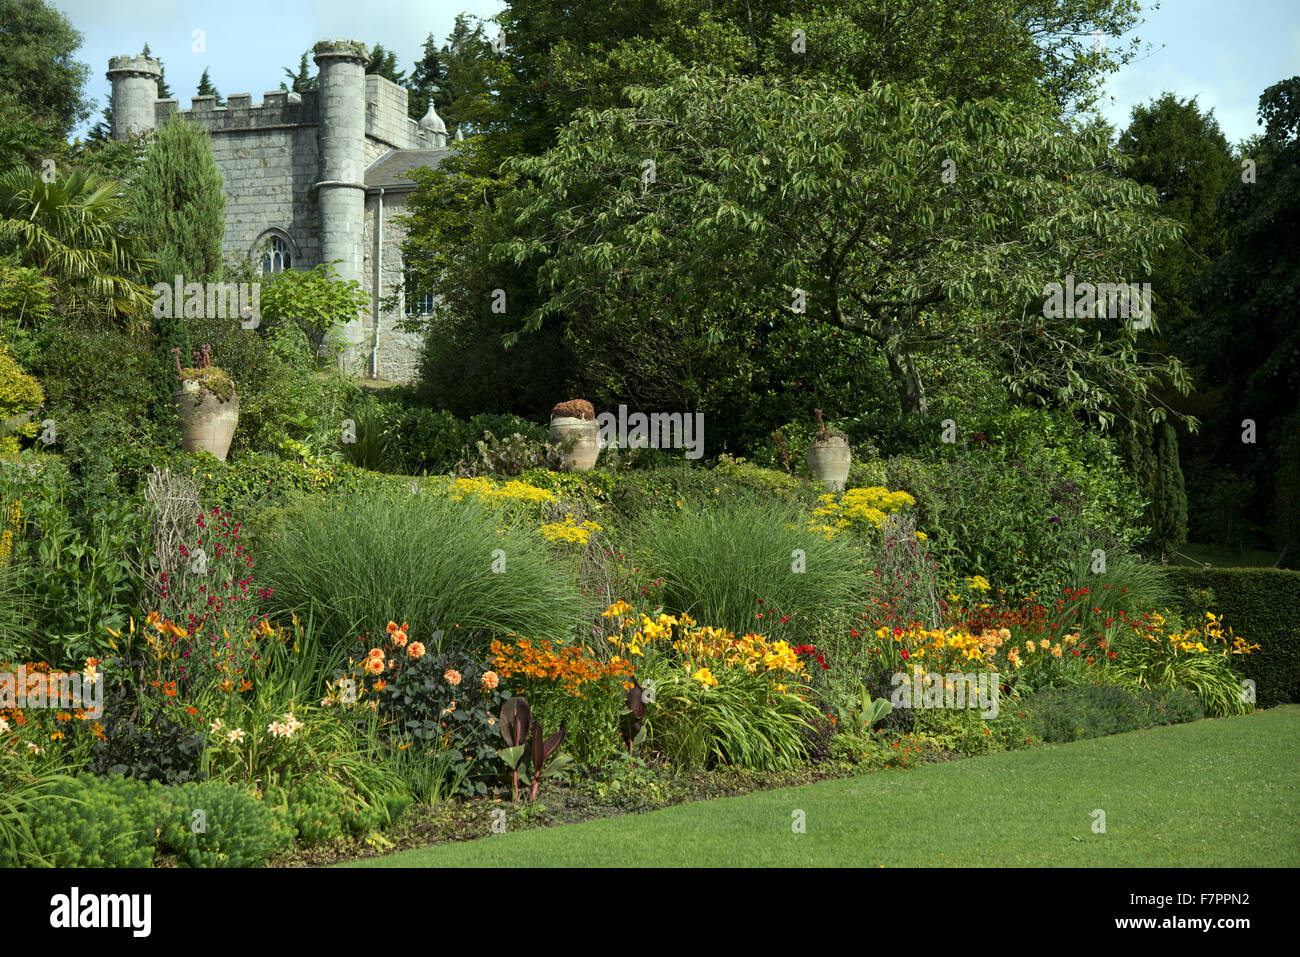 The house seen from the garden at Plas Newydd Country House and Gardens, Anglesey, Wales. This fine 18th century - Stock Image